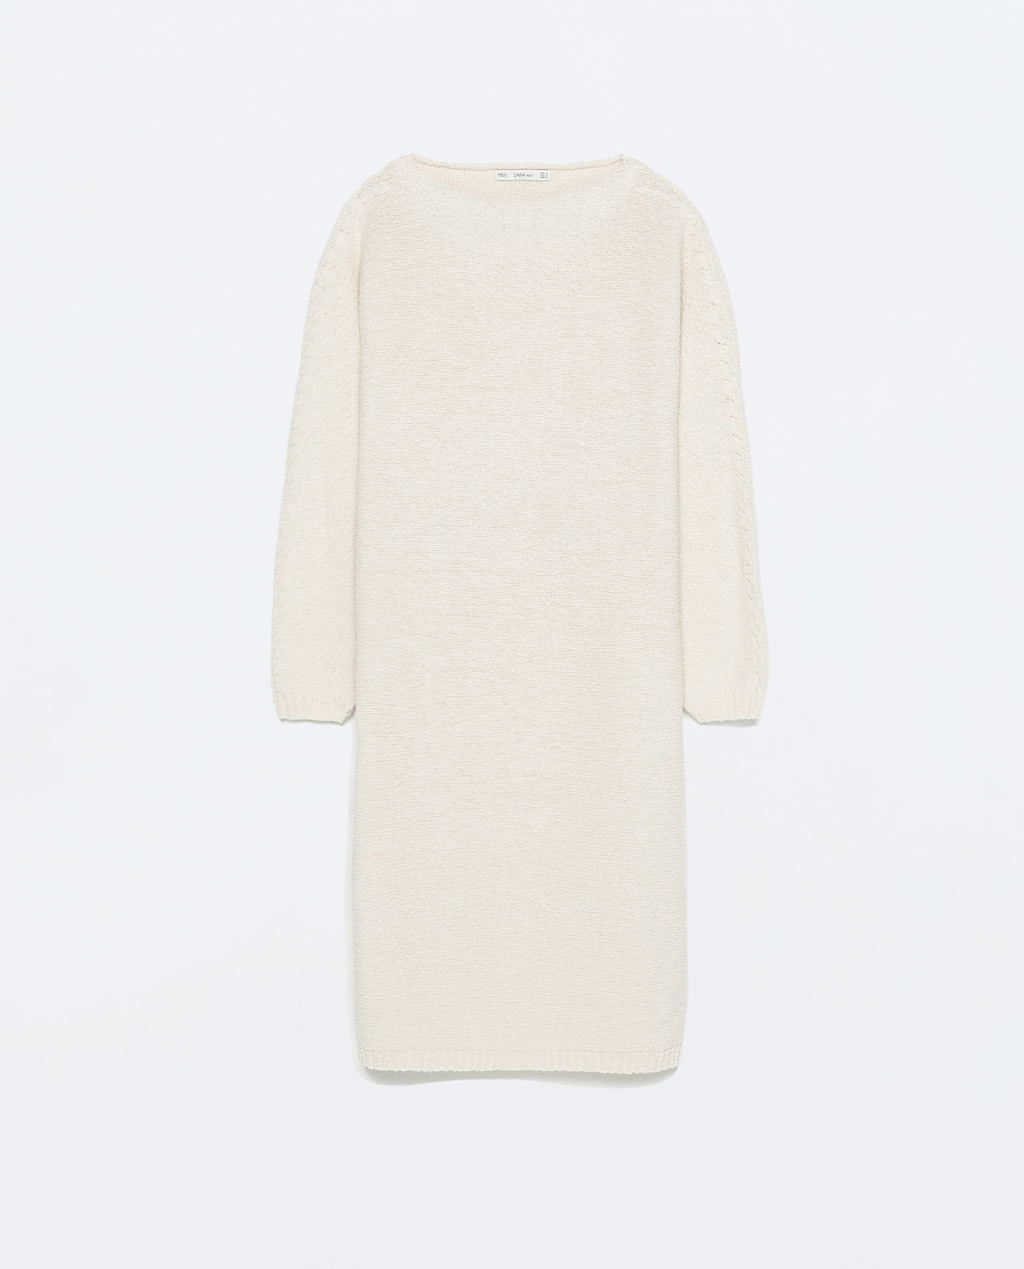 Tunic Dress - style: tunic; length: mid thigh; neckline: round neck; pattern: plain; predominant colour: ivory/cream; occasions: casual, creative work; fit: body skimming; fibres: cotton - 100%; sleeve length: 3/4 length; sleeve style: standard; texture group: crepes; pattern type: knitted - big stitch; pattern size: standard; season: s/s 2015; wardrobe: basic